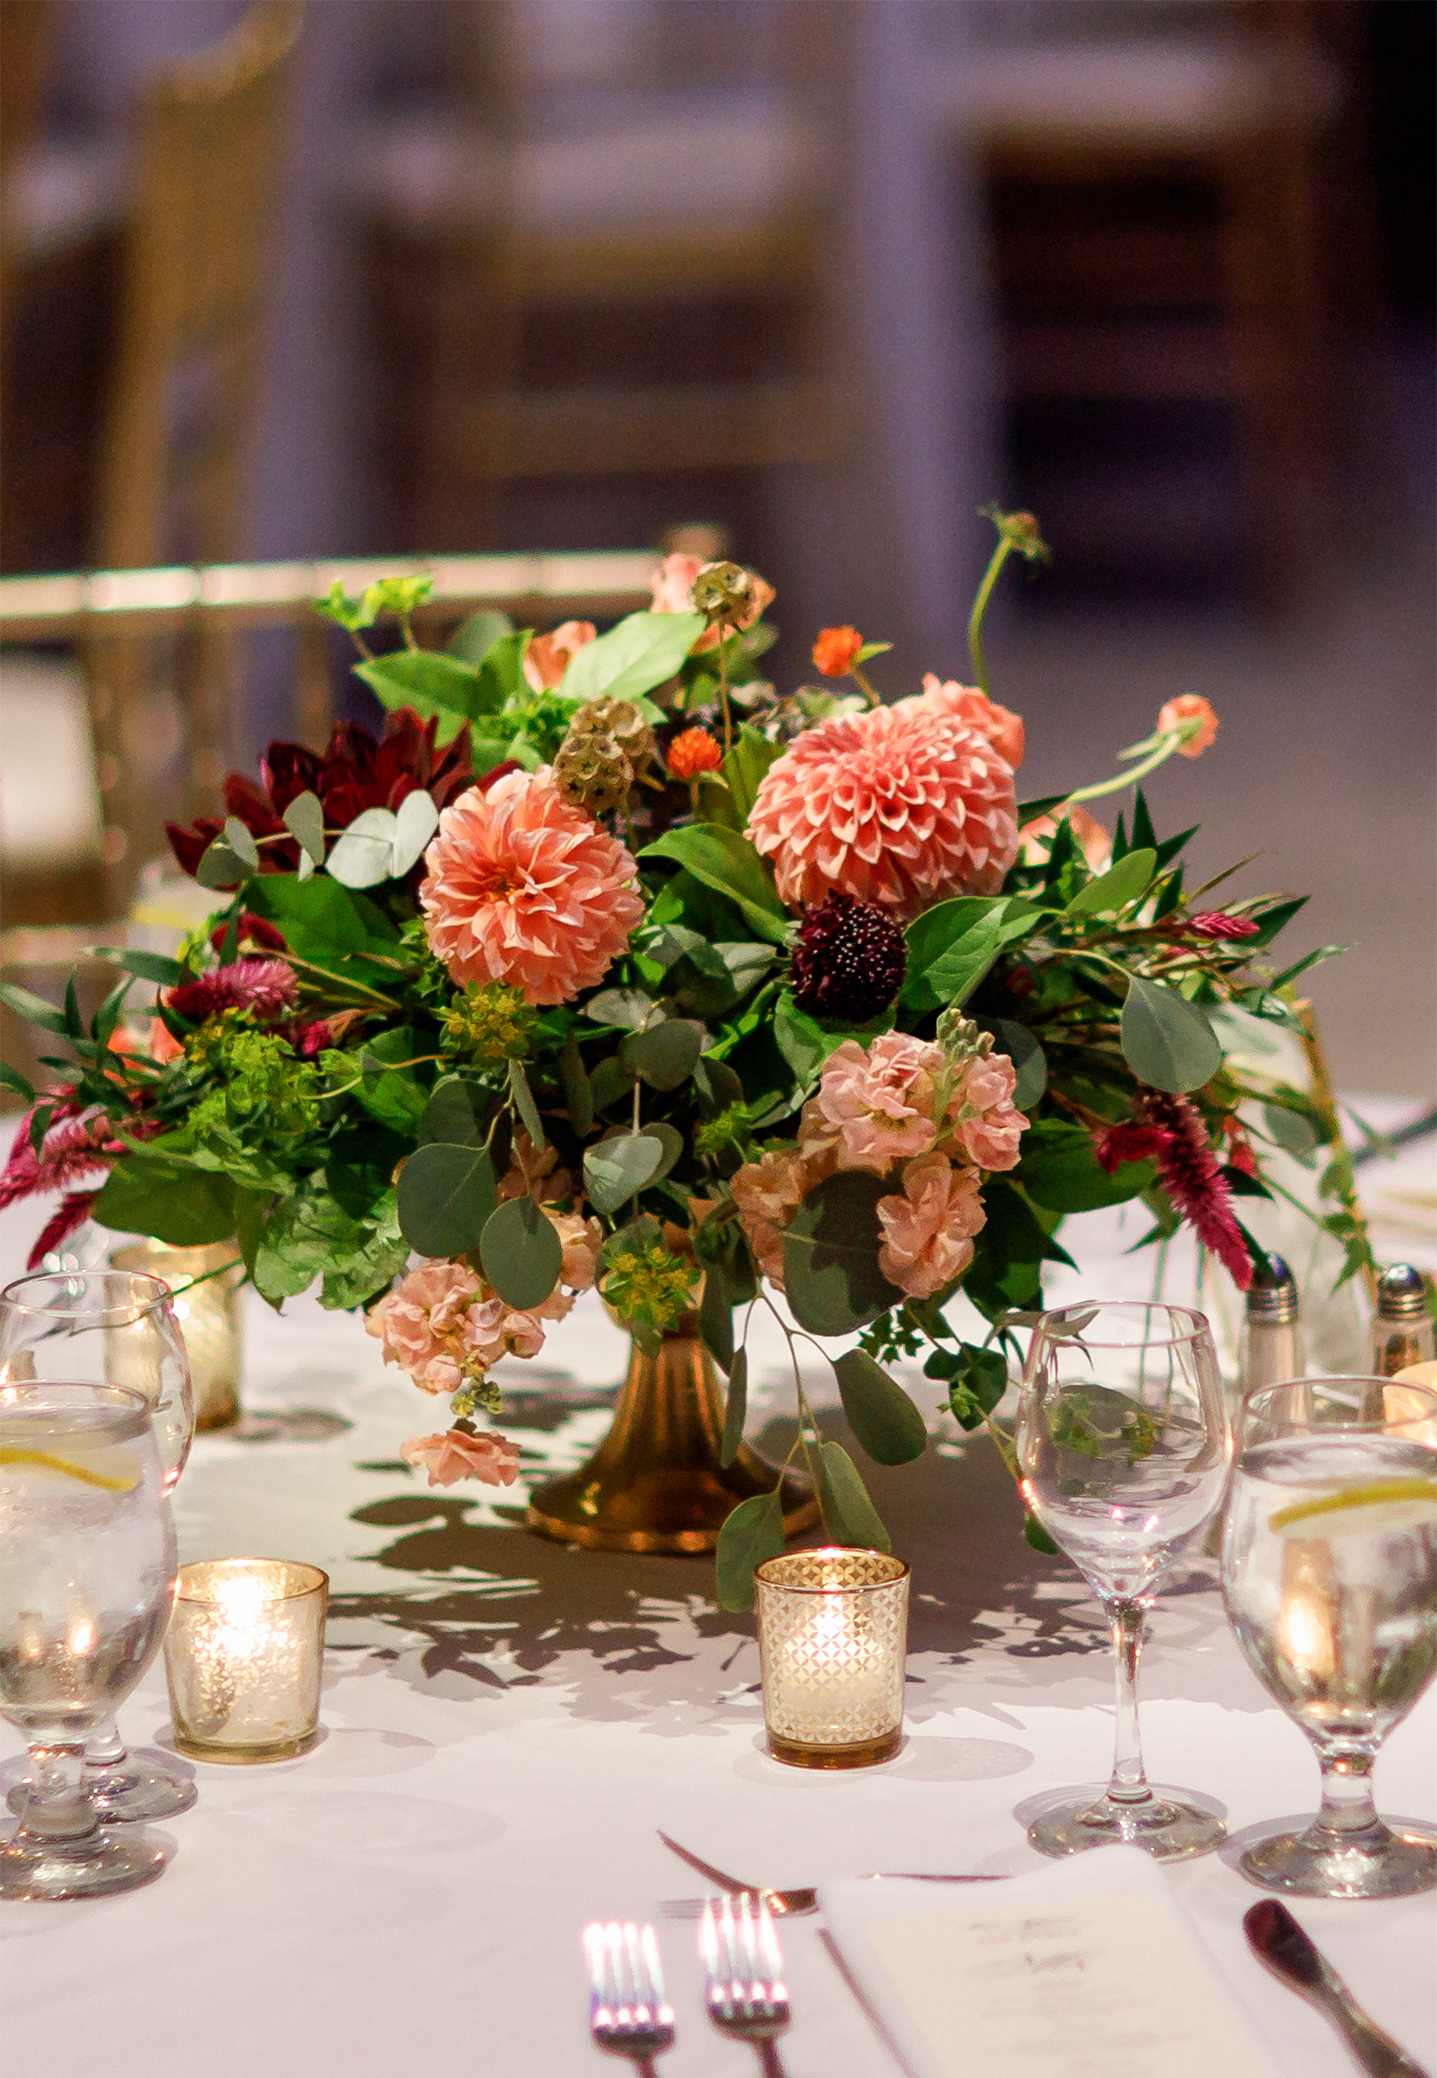 Autumn peach dahlia floral wedding centerpiece in a low-pedestal, designed in a soft natural style.